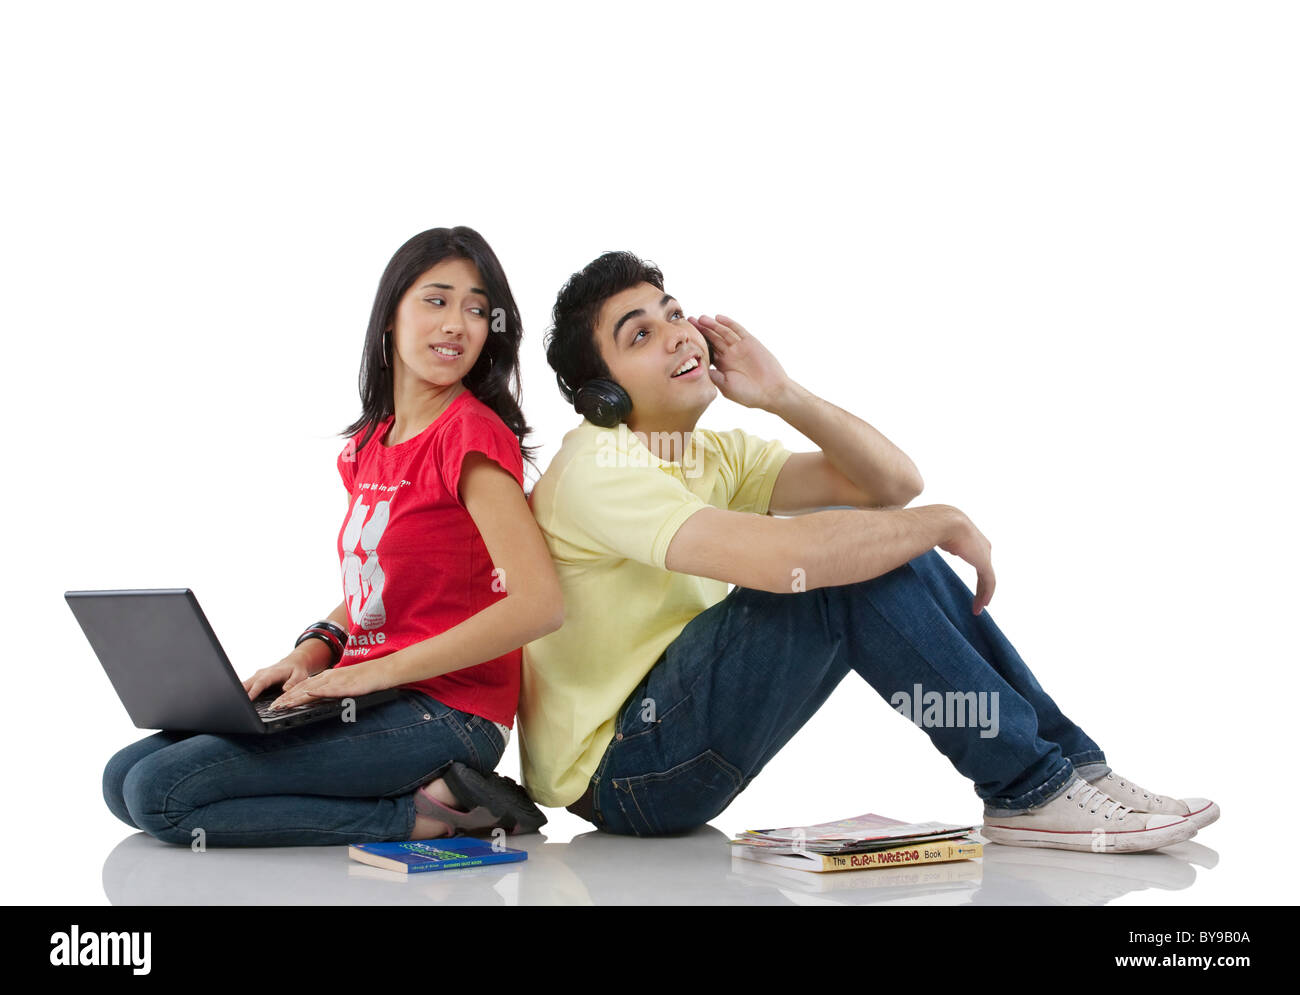 Girl sitting with a laptop while boy listens to music - Stock Image